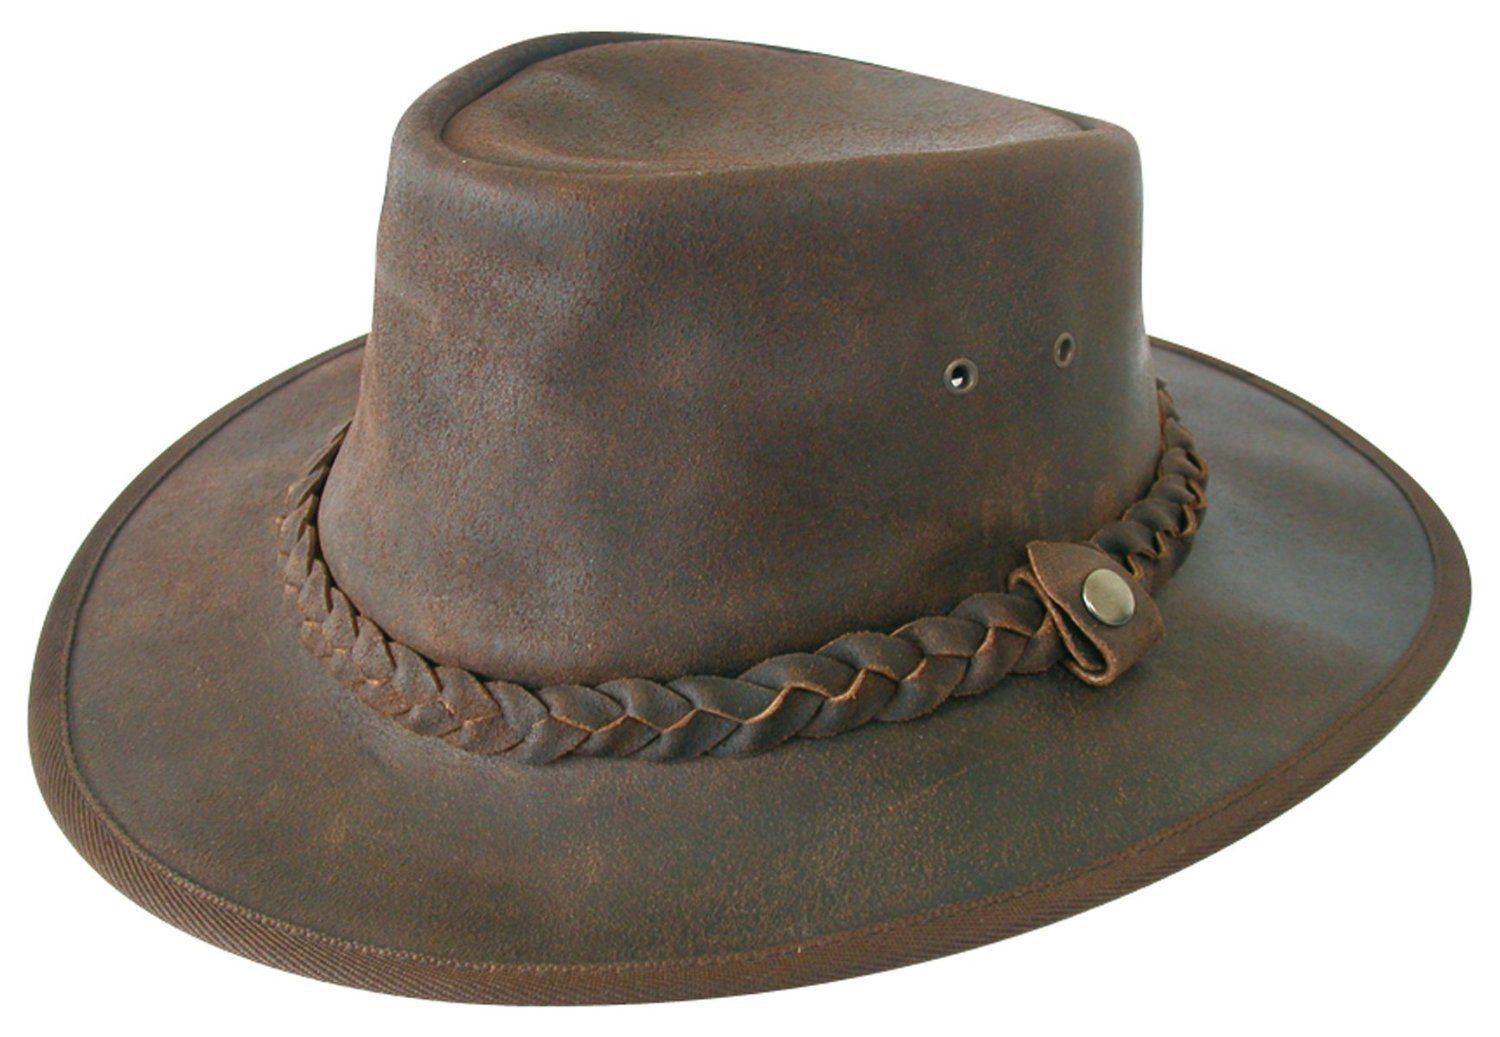 Explorer Brown Leather Bush Hat from Cotswold Country Hats. Small ... eb4d838b847